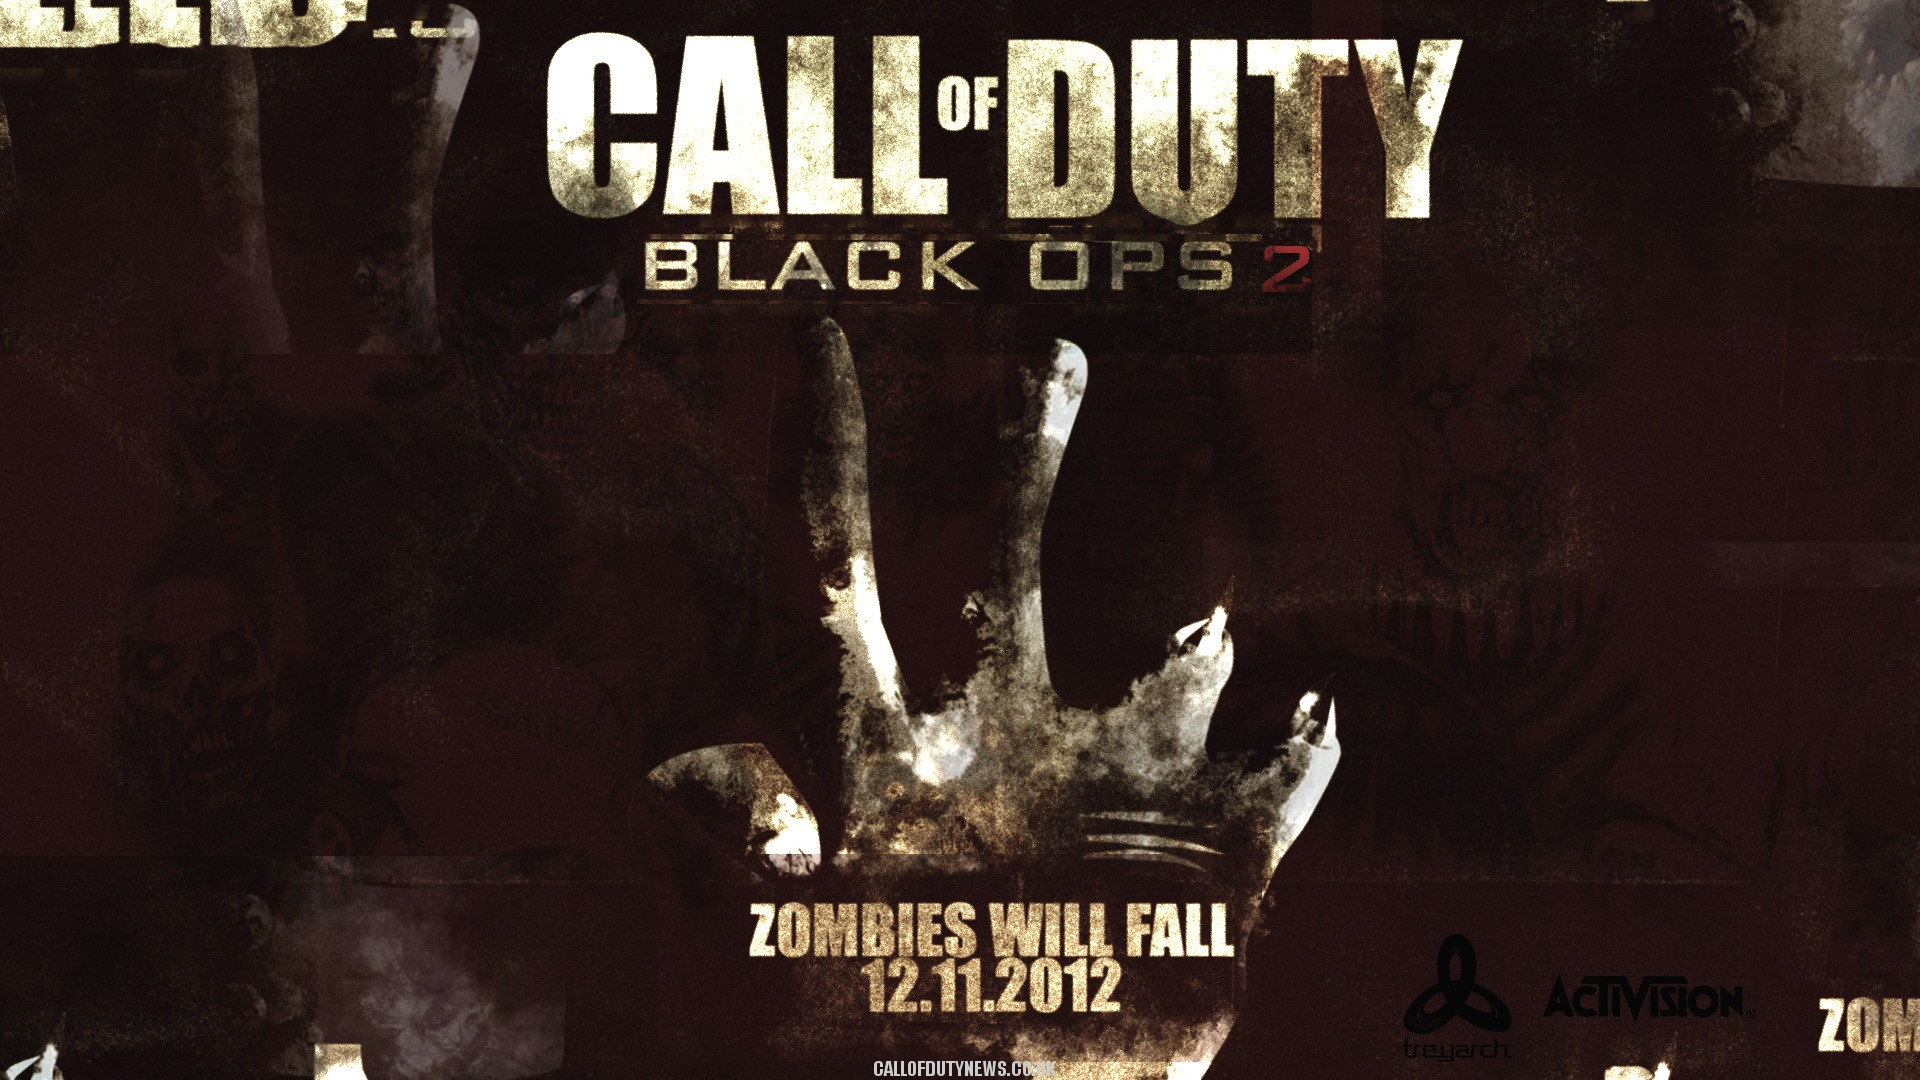 Black Ops Zombies Wallpaperwallpapers Call Of Duty News Blog Bsulkh 1920x1080